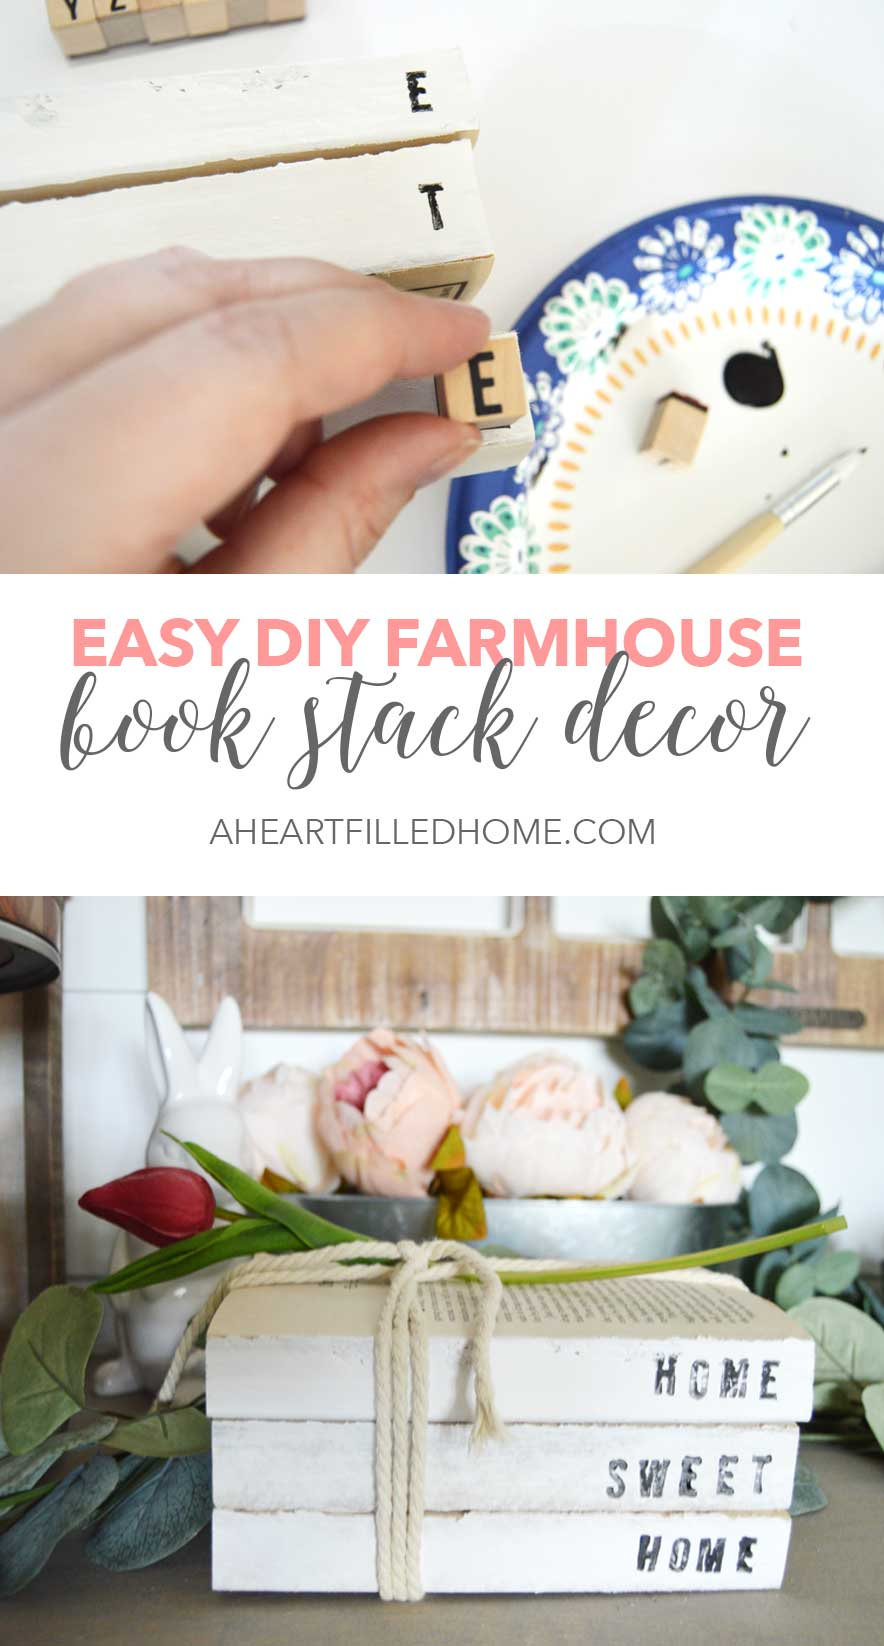 Thrift Store Transformation Tuesday! See how I transformed some old paperback books into some beautiful farmhouse decor!